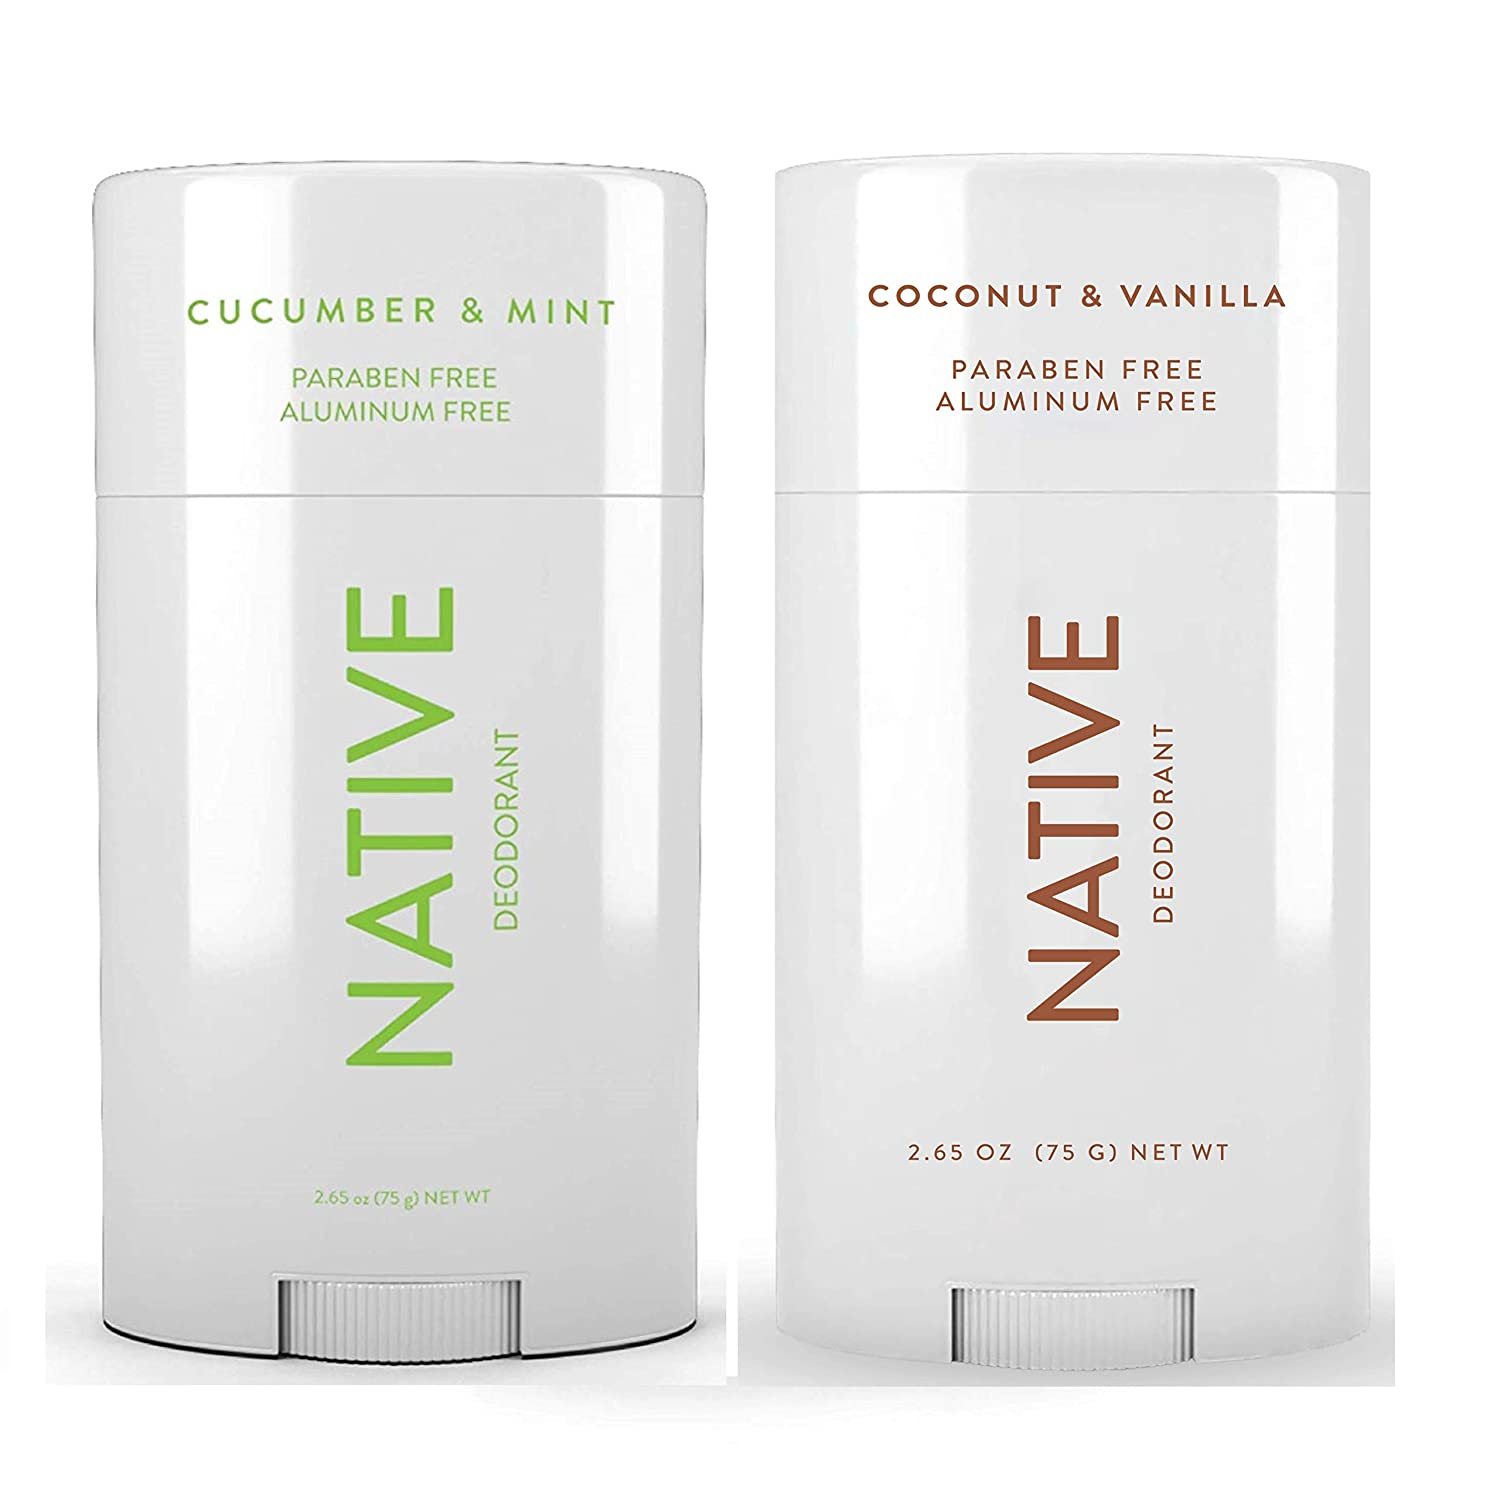 Native Deodorant - Natural Deodorant For Women and Men - 2 Pack - Aluminum Free, Free of Parabens - Contains Probiotics - Coconut & Vanilla And Cucumber & Mint